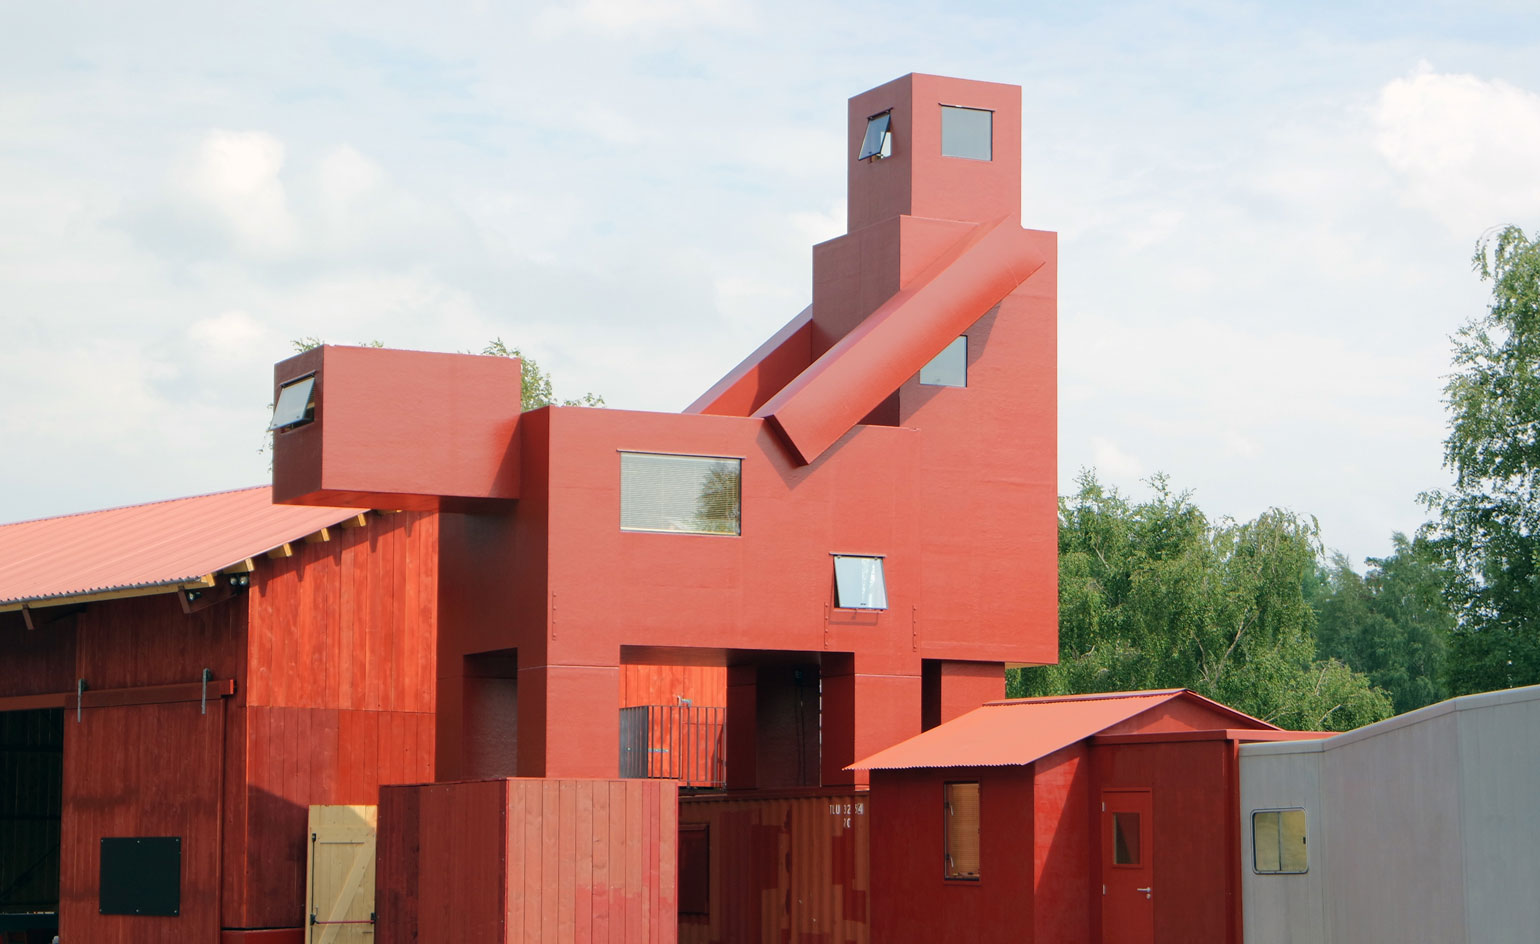 Atelier Van Lieshout at the Ruhrtriennale. Yes it is a man screwing an animal.